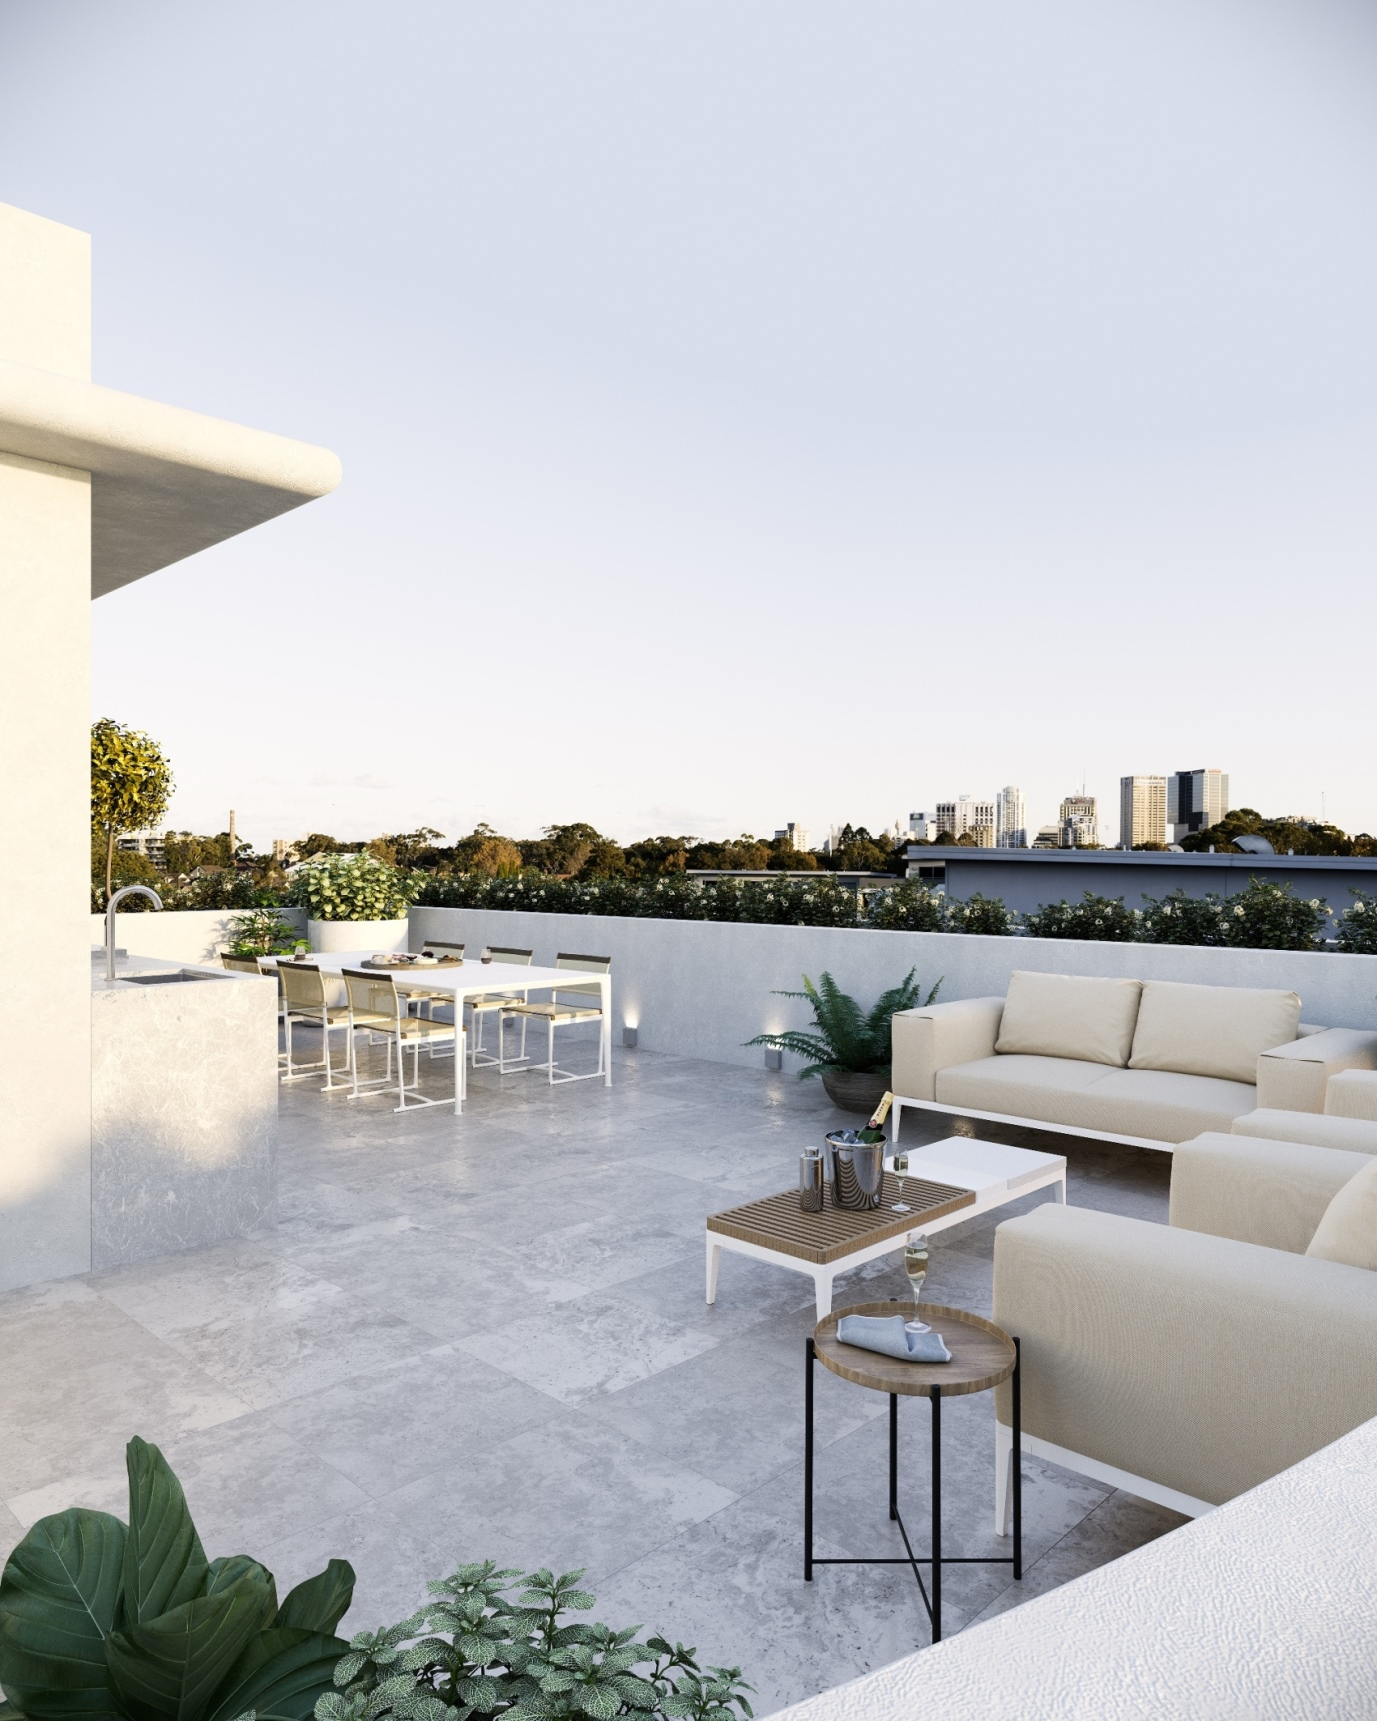 Copper Terrace Apartments: Mera, Cammeray Apartments For Sale In Sydney, New South